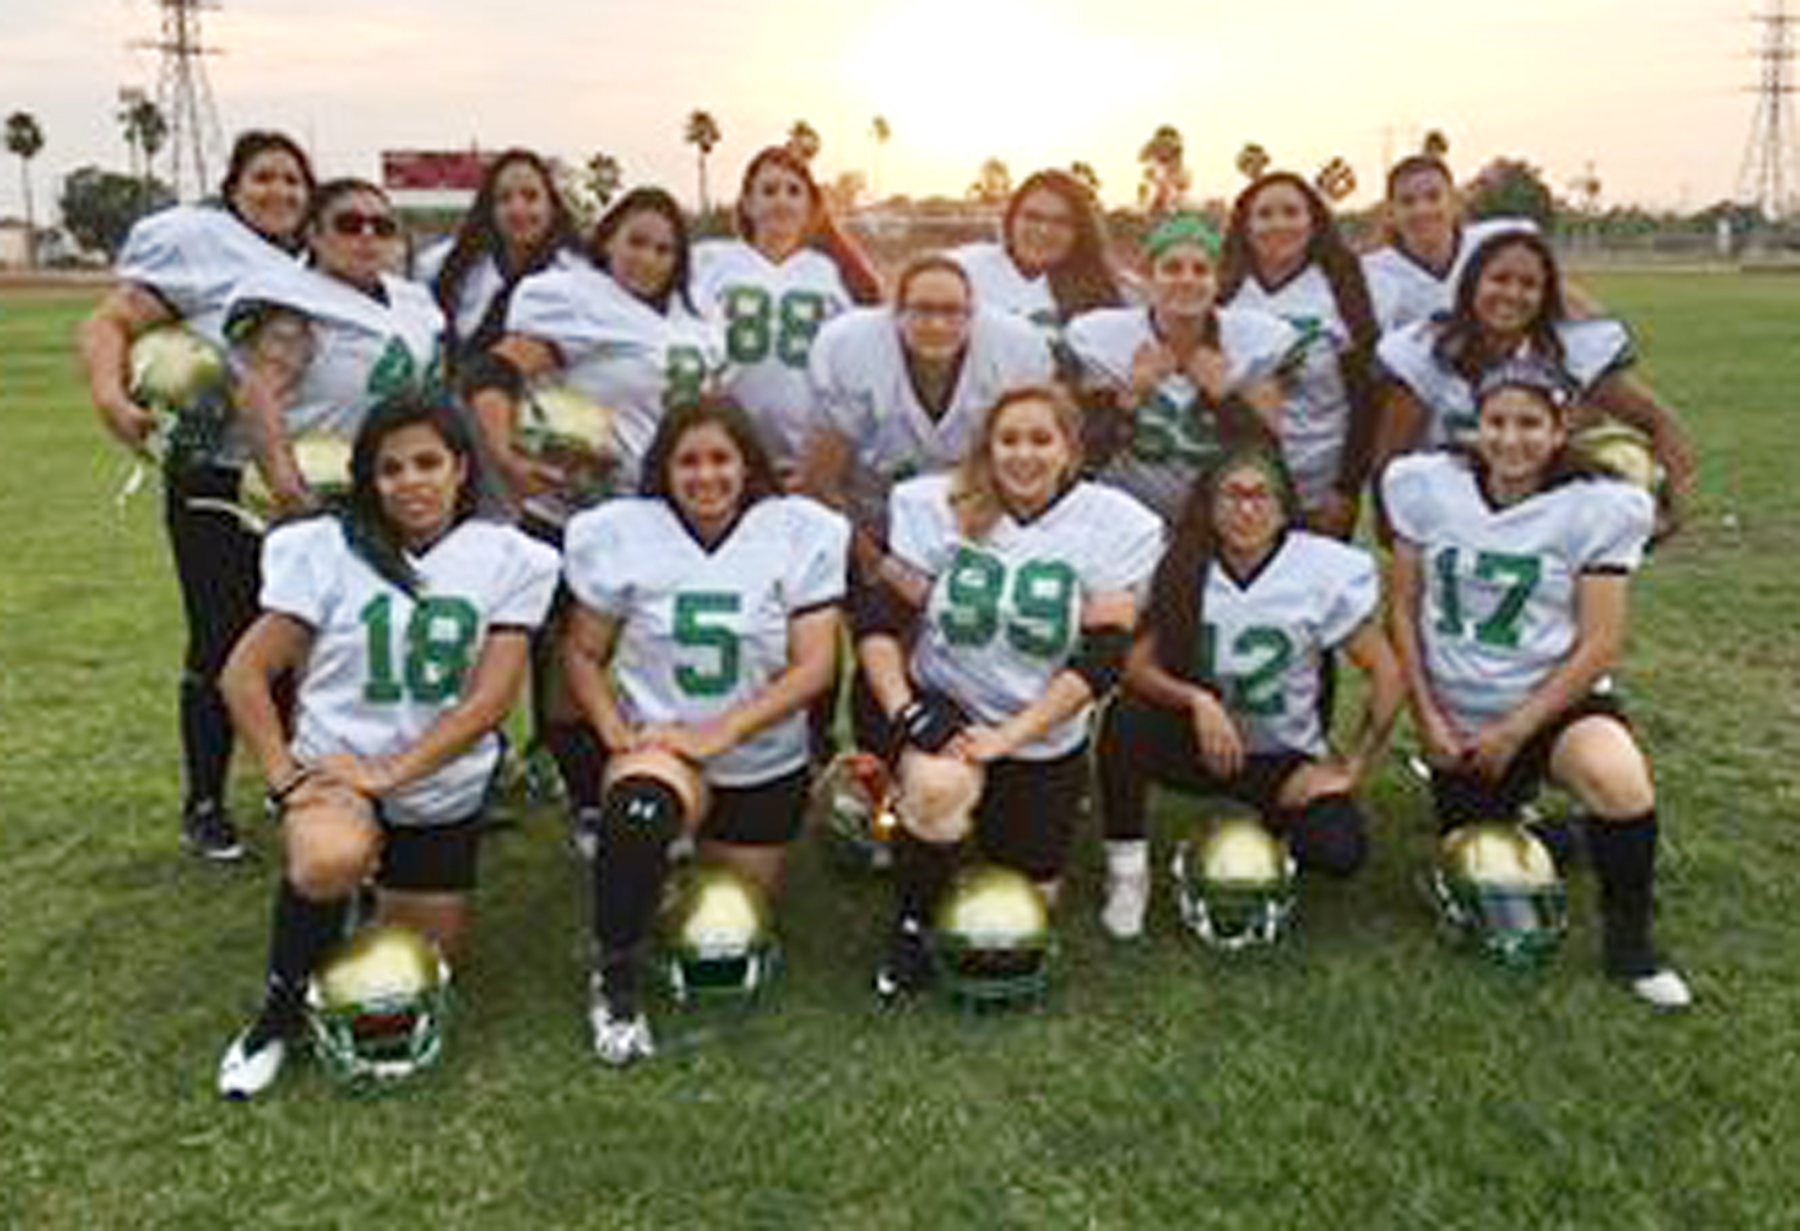 For the love of the game: Women's semi-pro football team ...